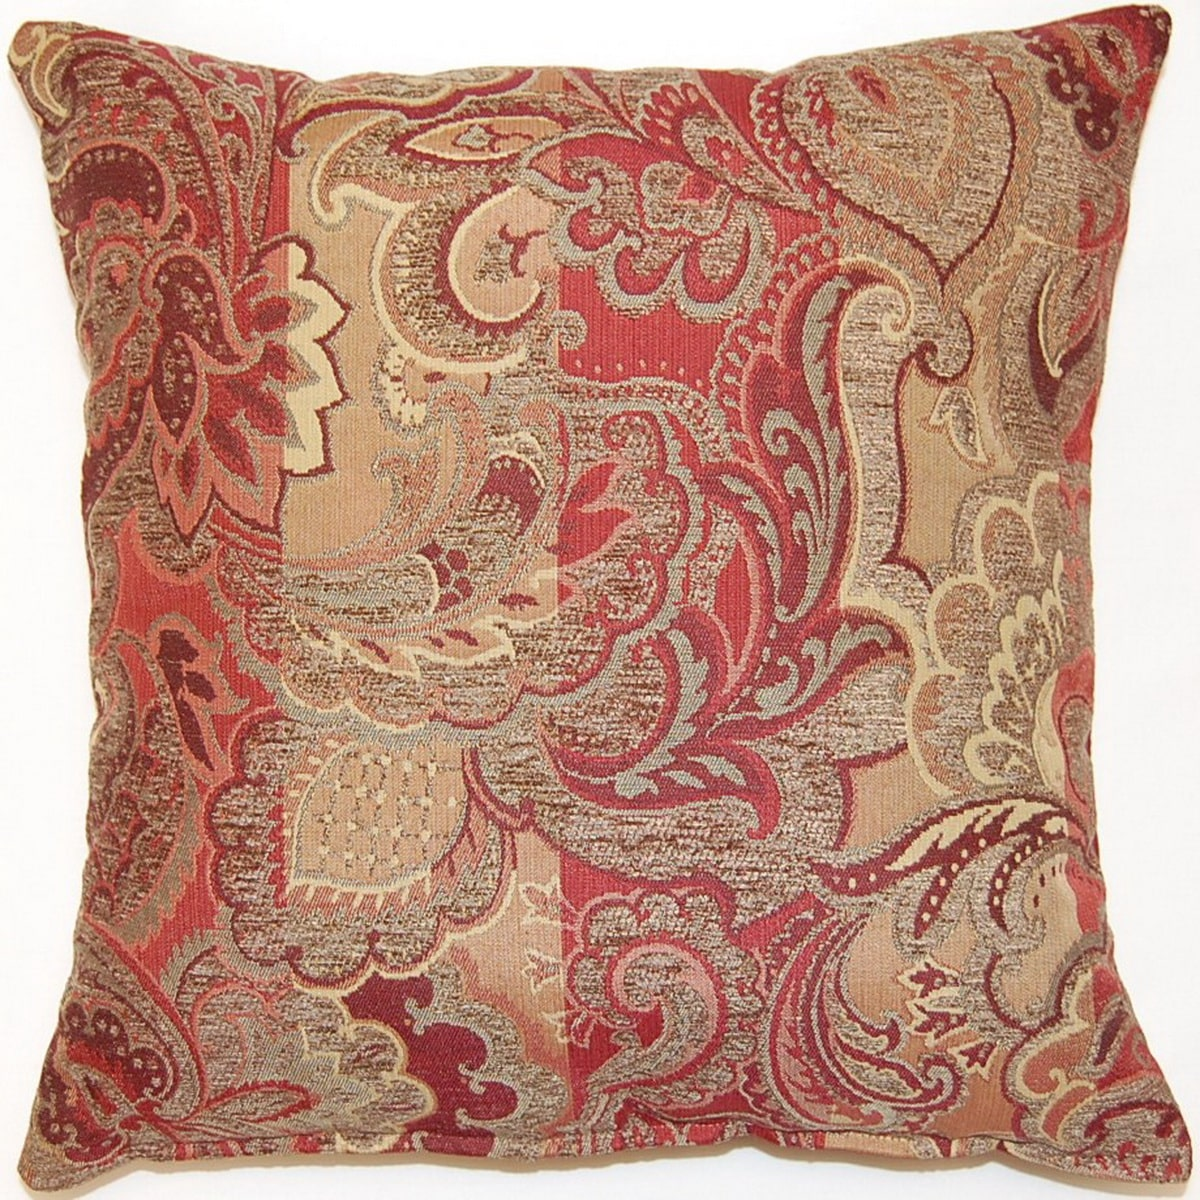 Fox Hill Trading Cambridge Crimson 17-inch Throw Pillows (Set of 2)